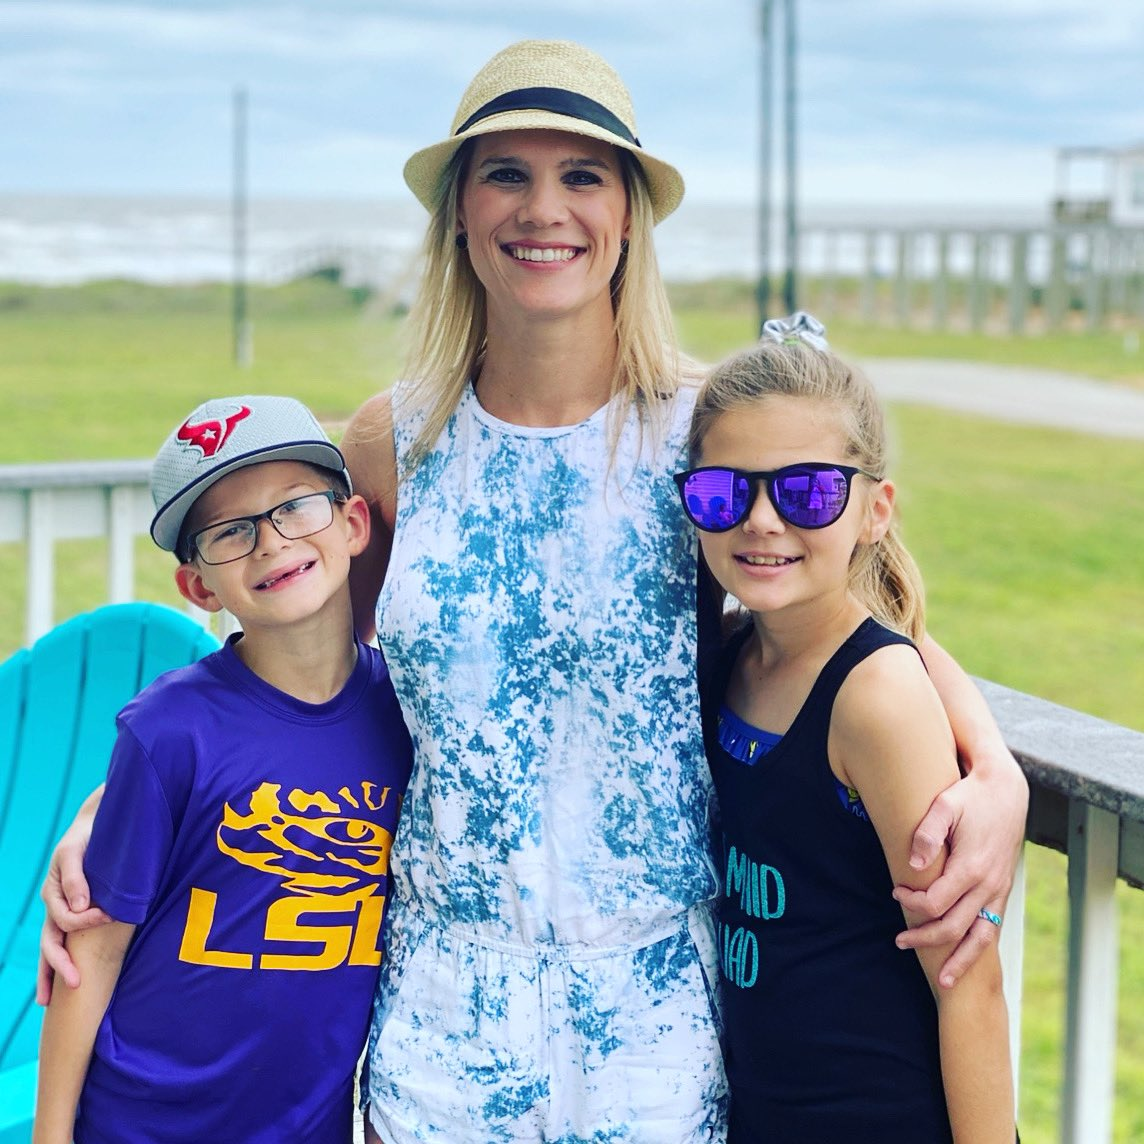 Happy Mother's Day to my KiKi! Bron, Kenz and myself are so grateful to have you. Thanks for all you do! #mothersday #imamotherlover #weloveyouBIGpic.twitter.com/kSbyv028Al – at Surfside Beach